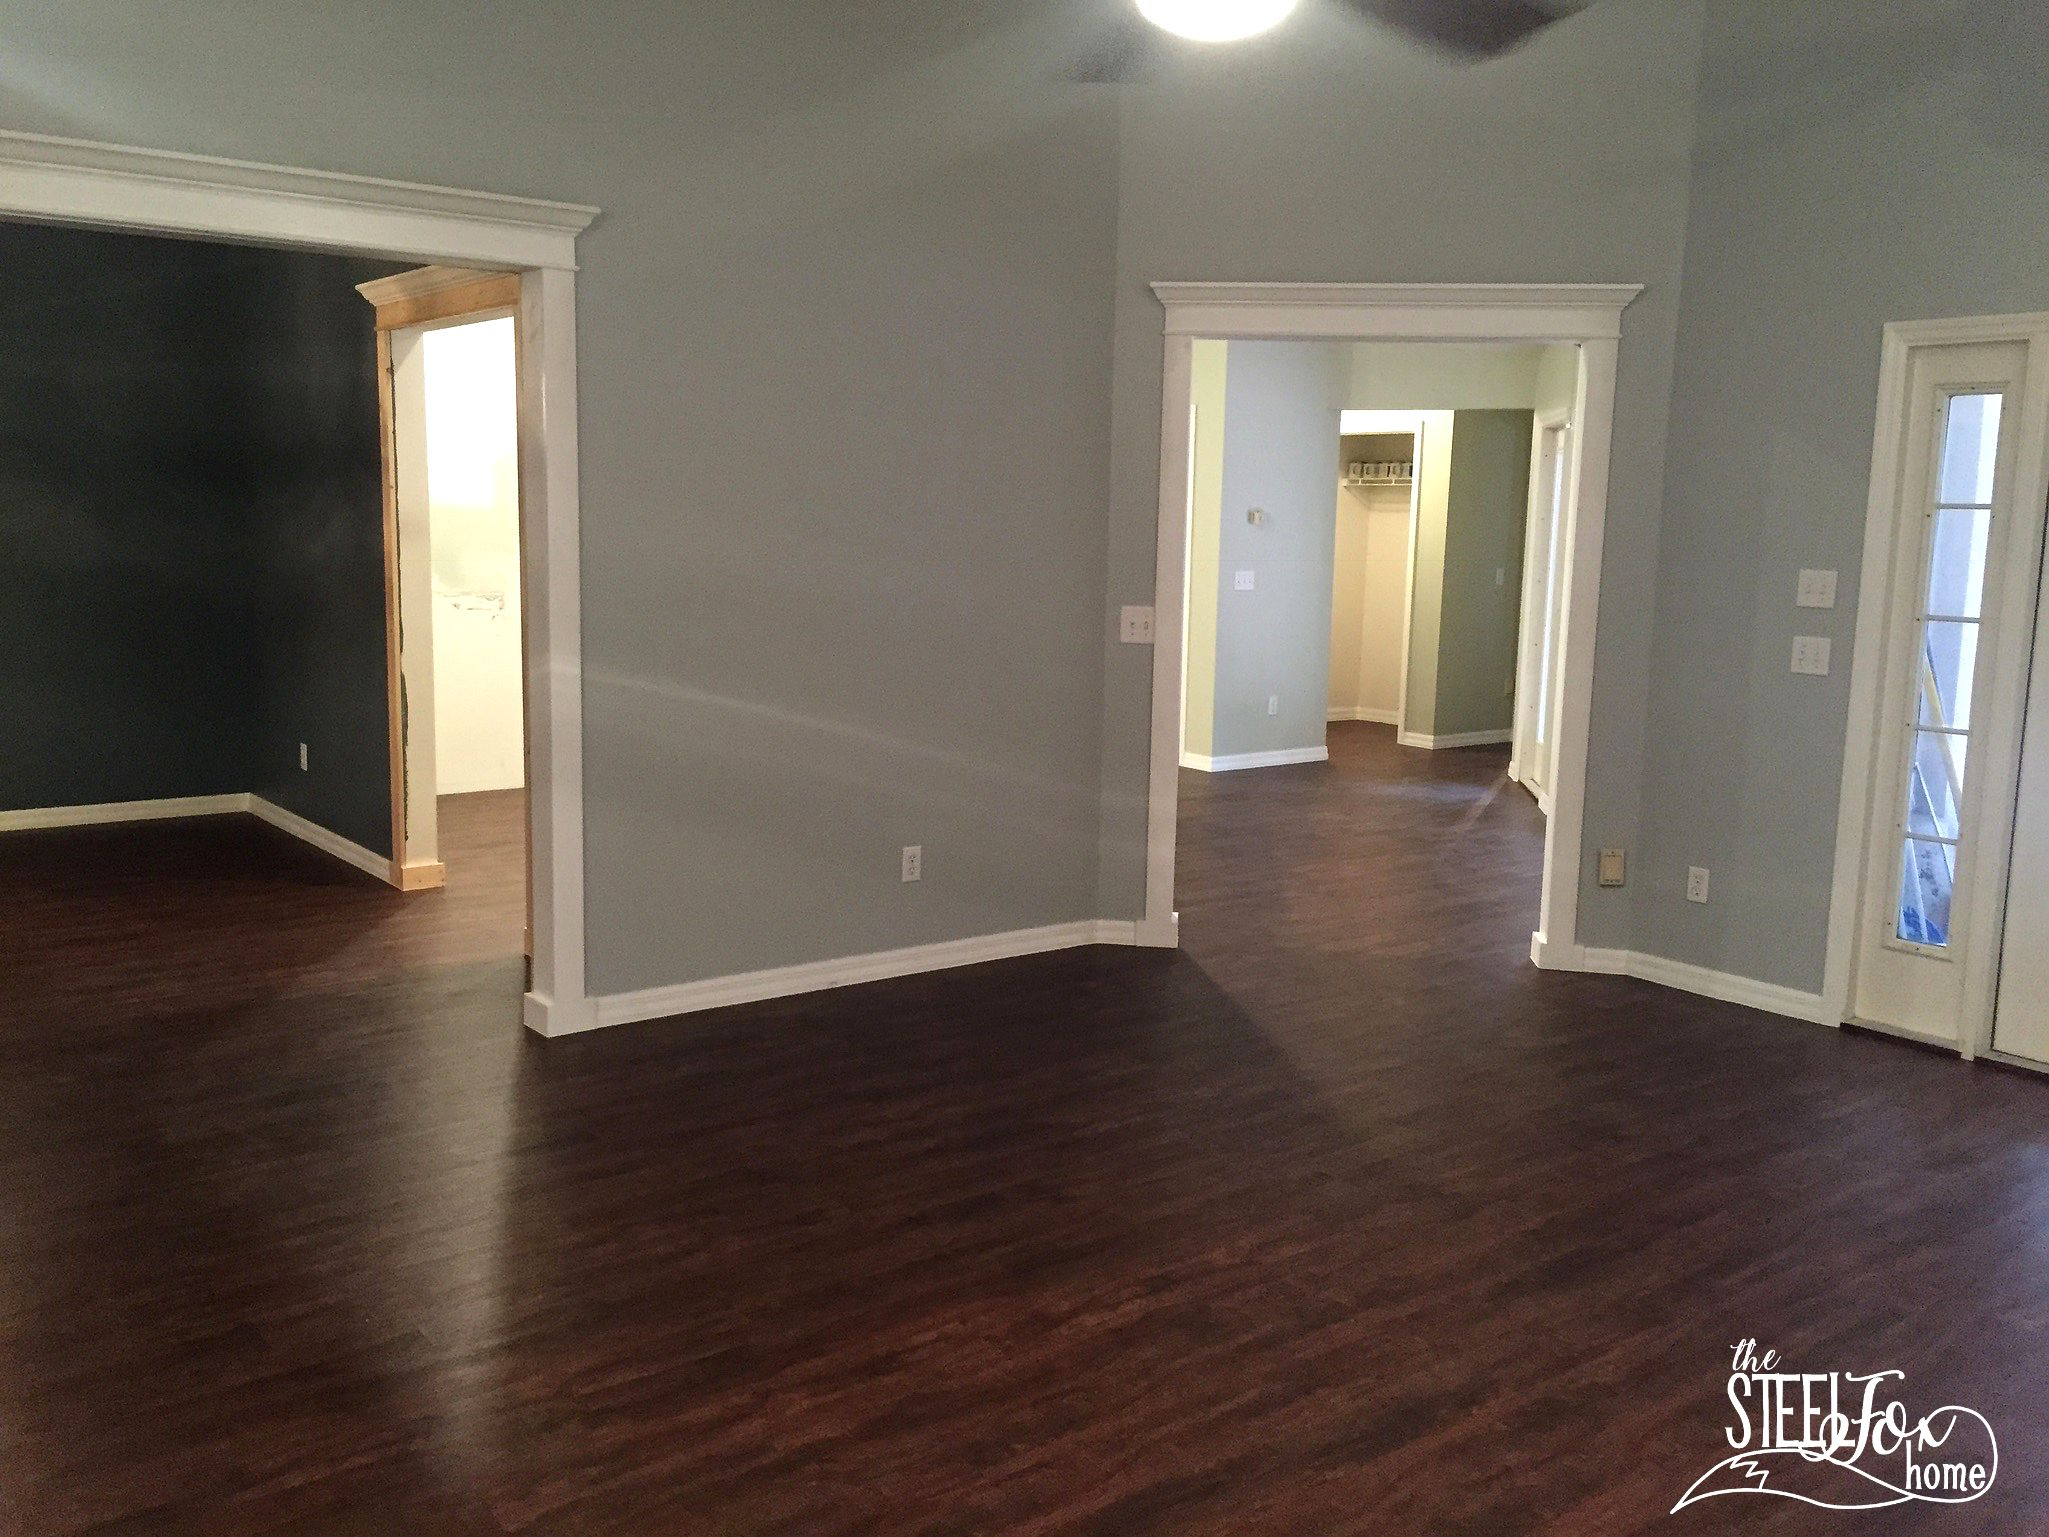 Luxury Vinyl Plank Wood Flooring whole house makeover. Why